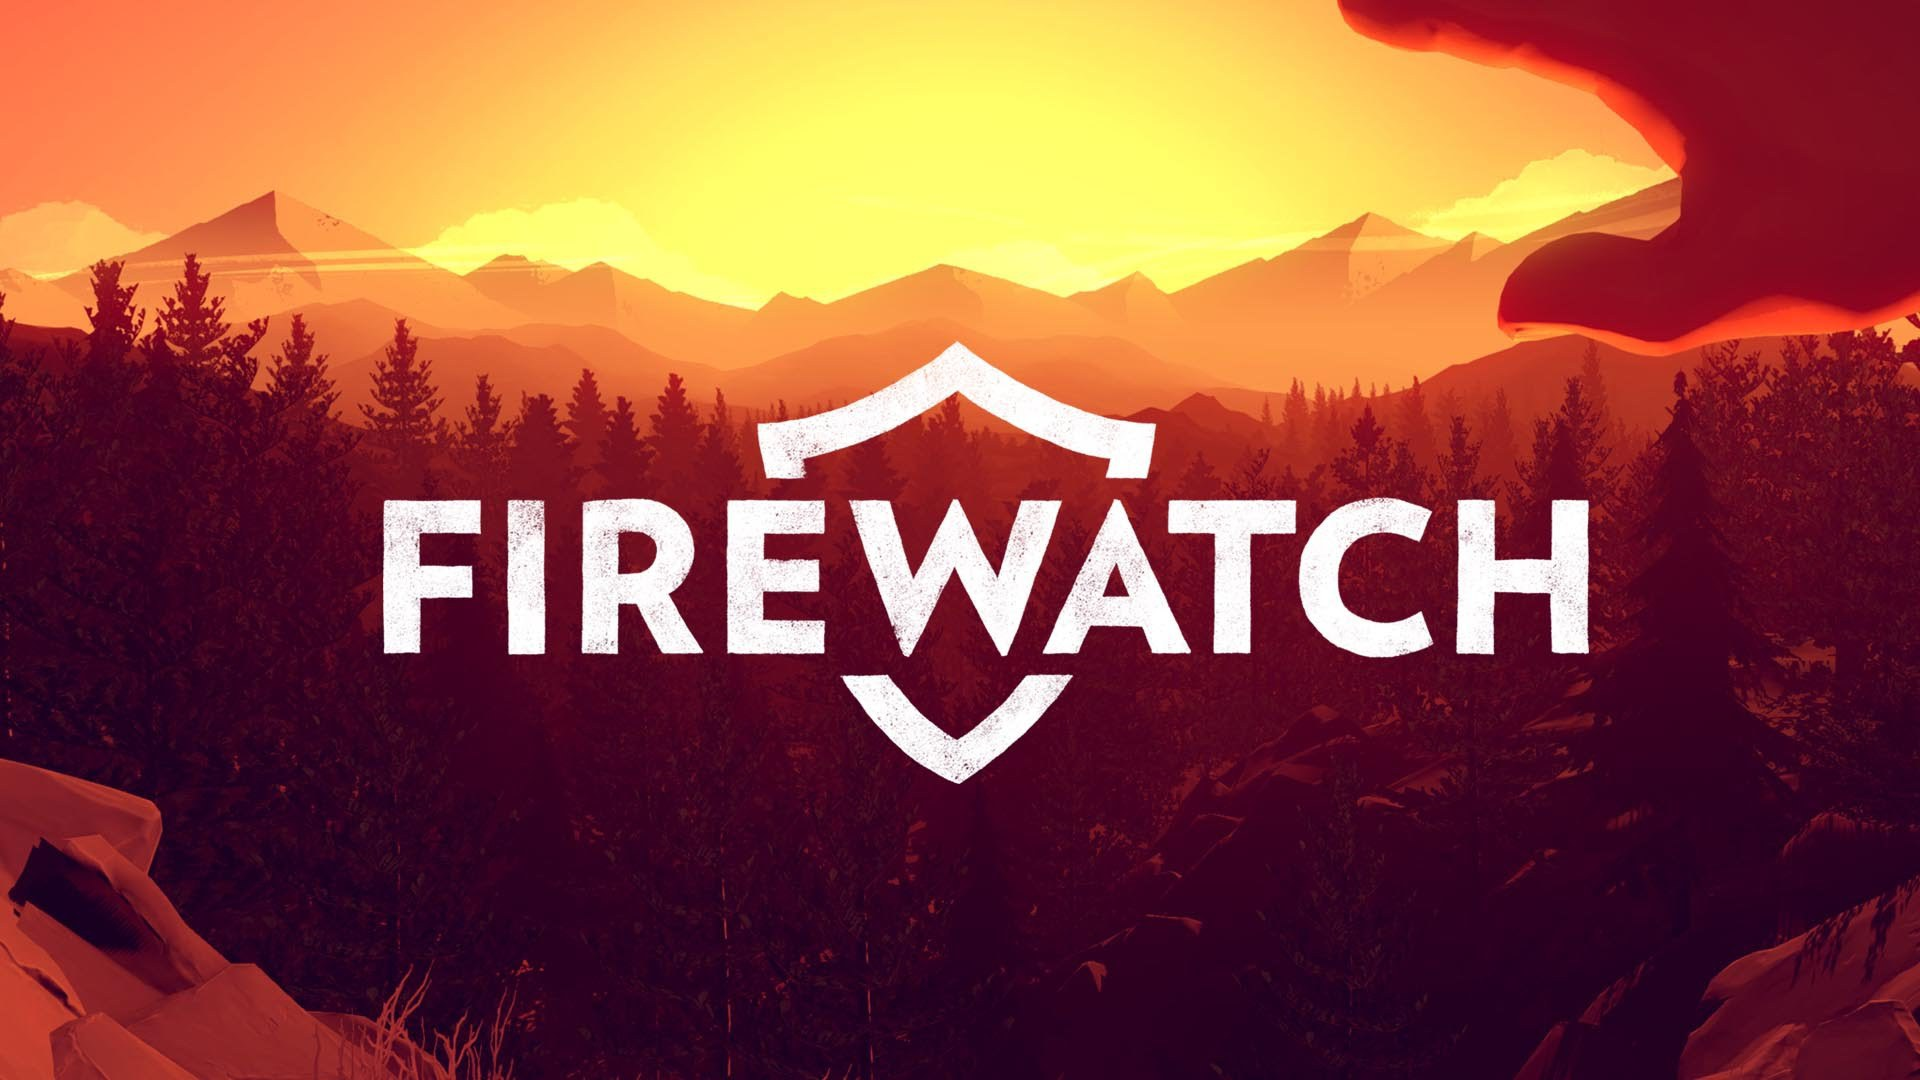 firewatch logo wallpaper 59158